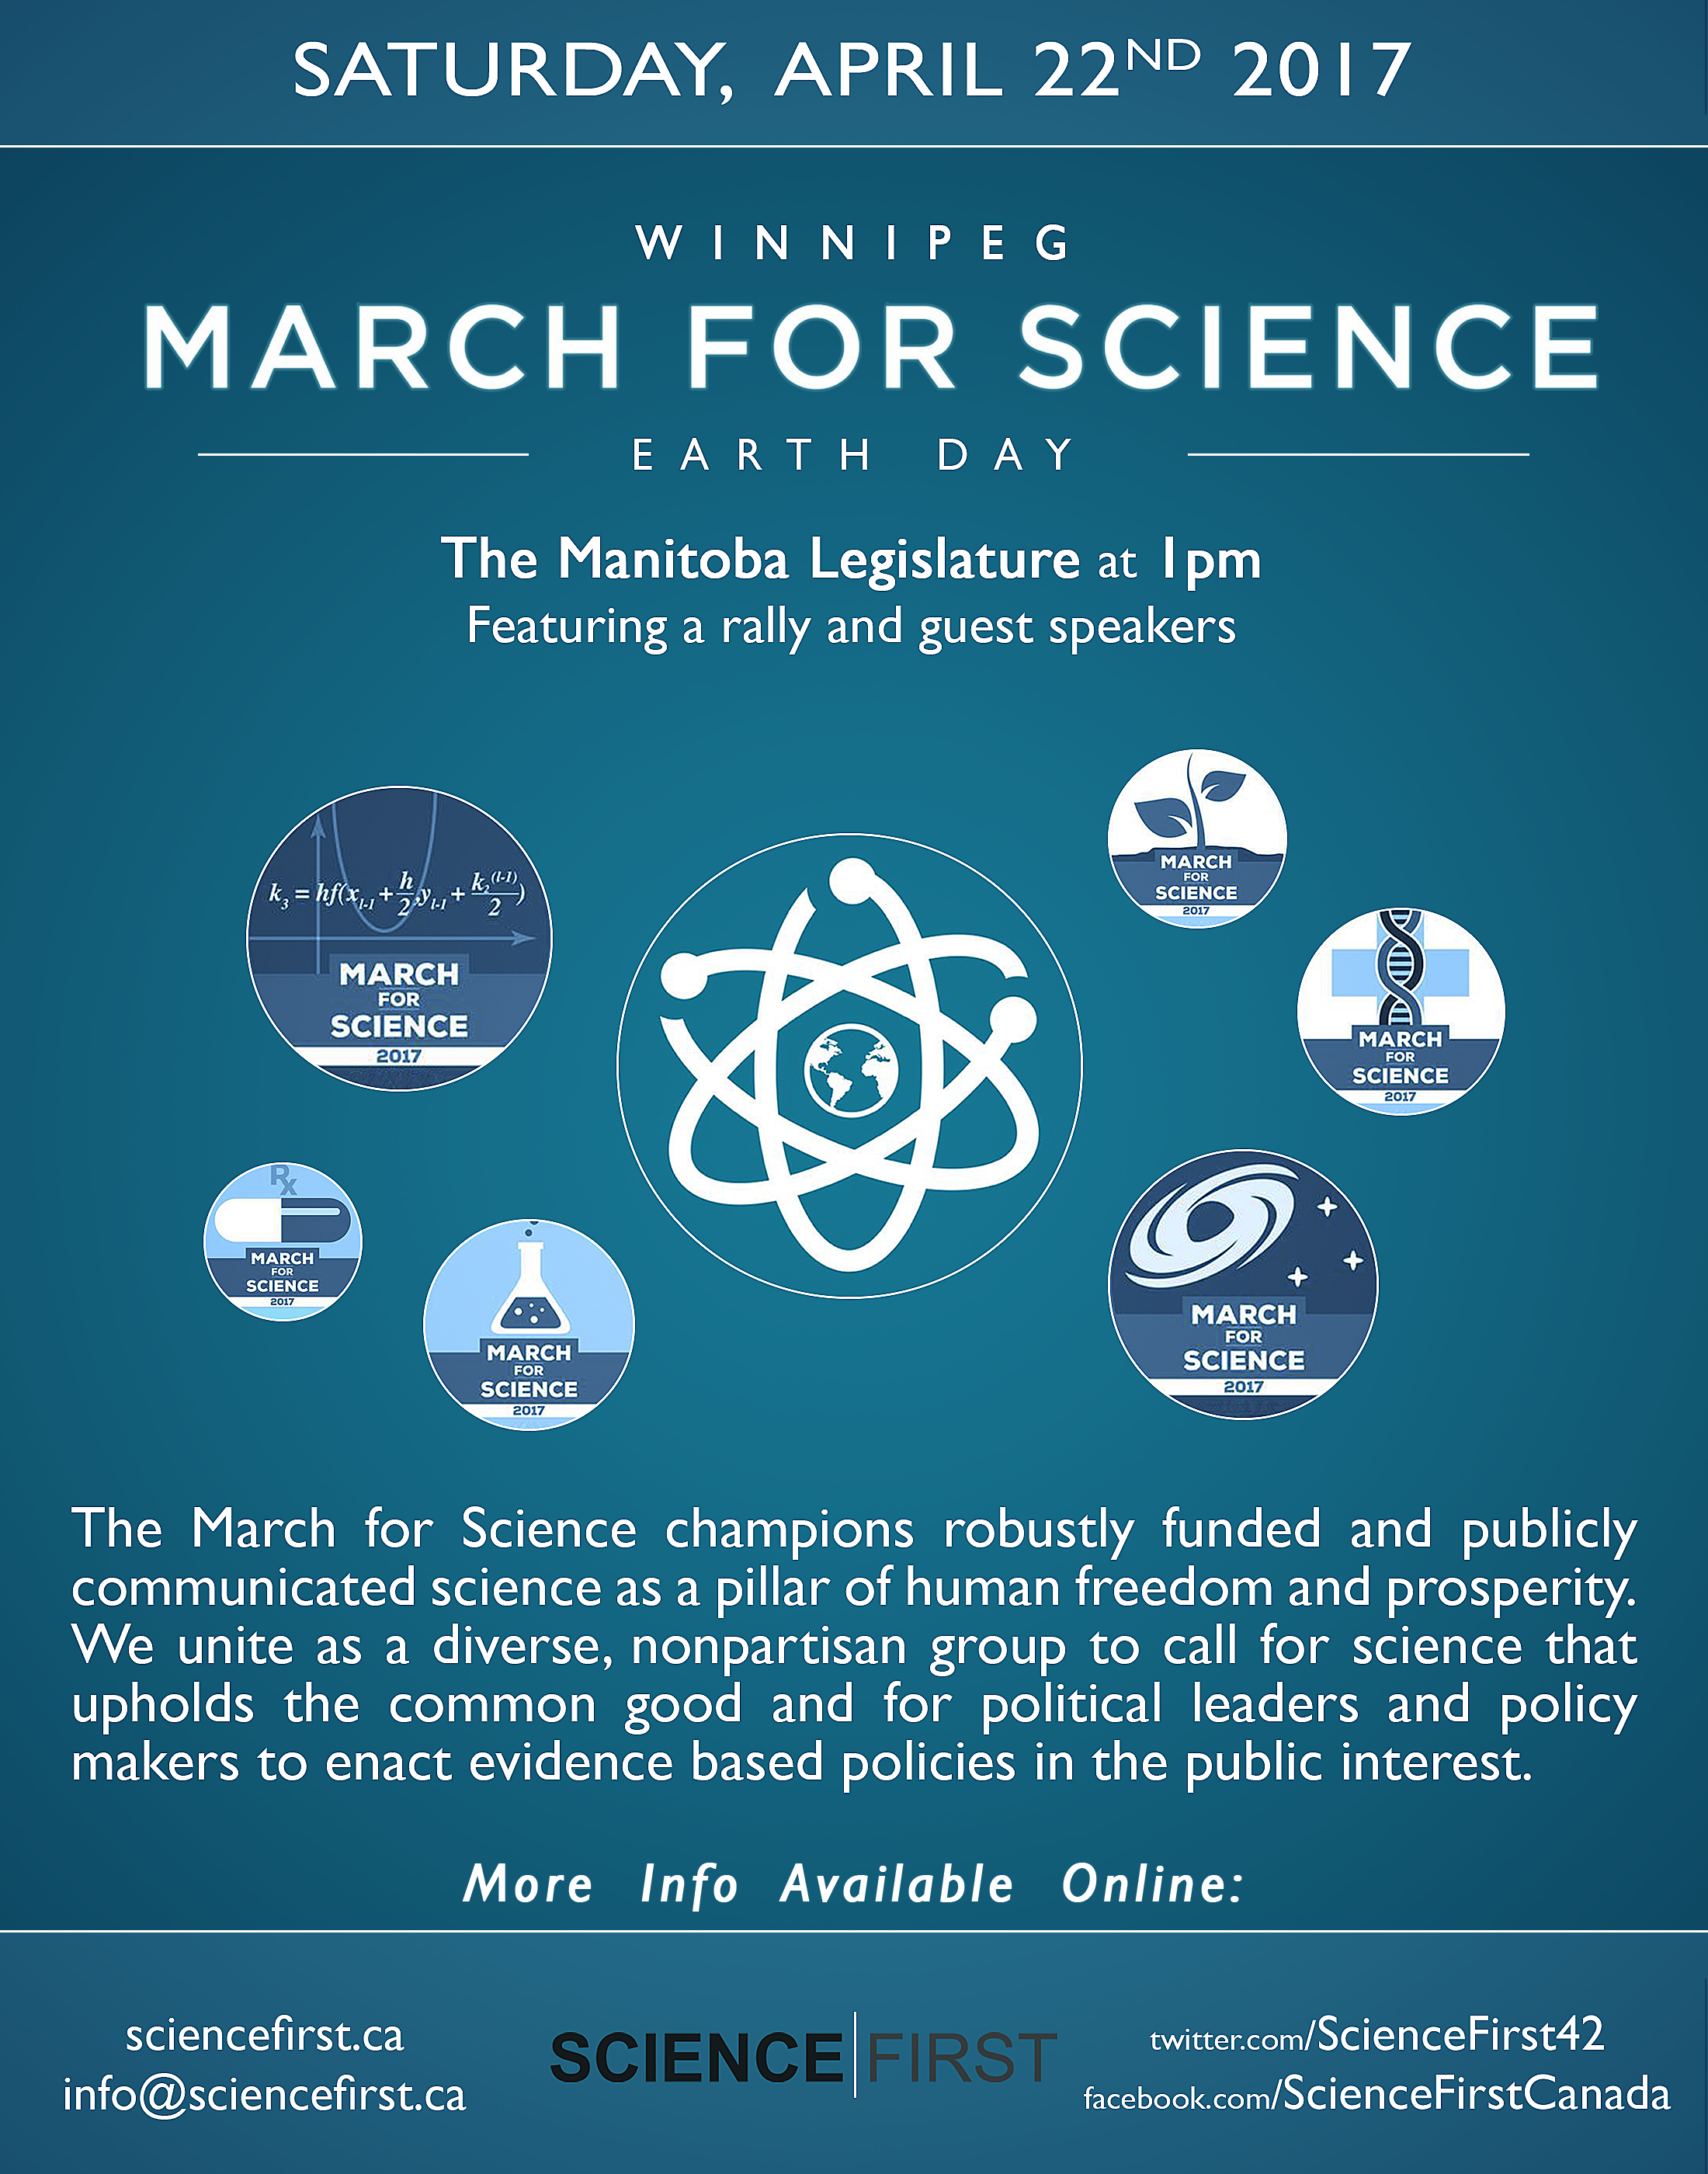 March For Science - Winnipeg - April 22nd, 2017